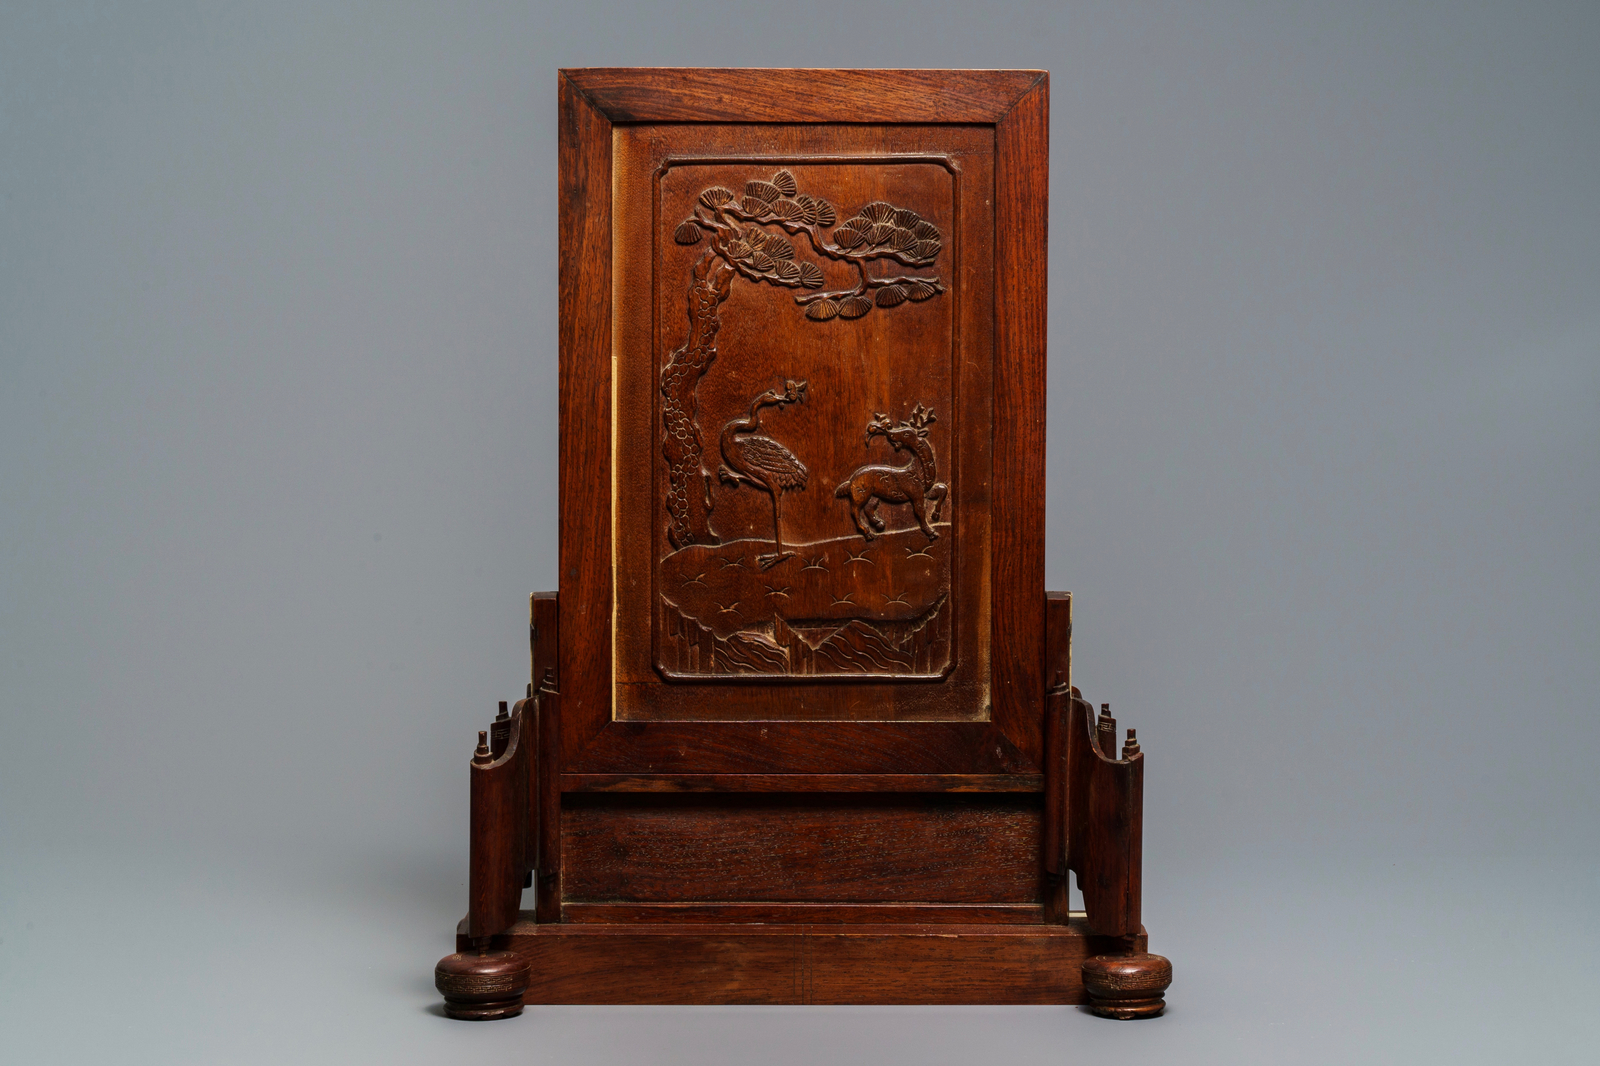 Lot 8 - A fine Chinese grisaille 'winter landscape' plaque in a wooden table screen, Republic, 20th C.